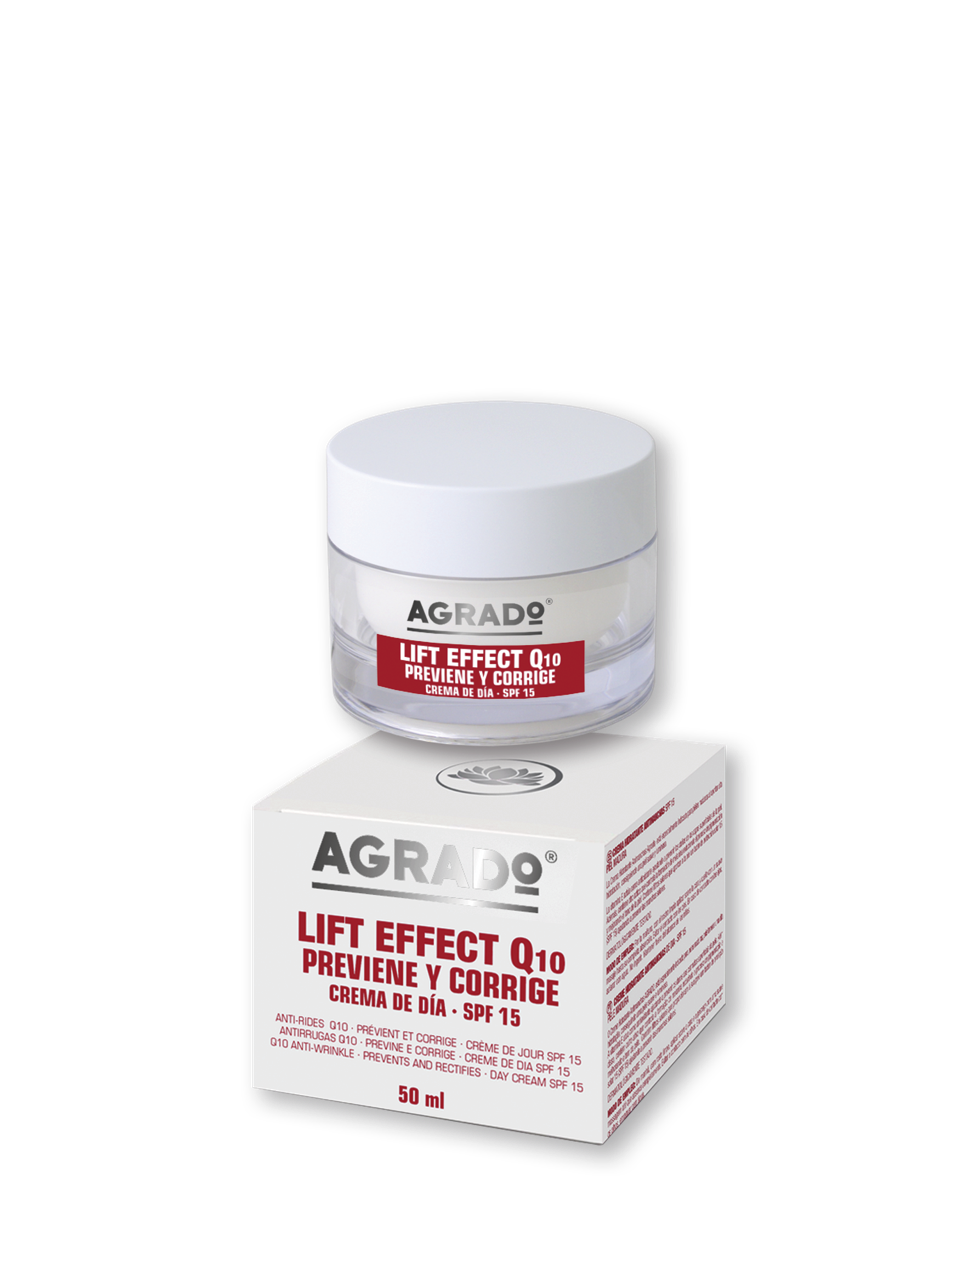 crema-facial-lift-effect-agrado-5500